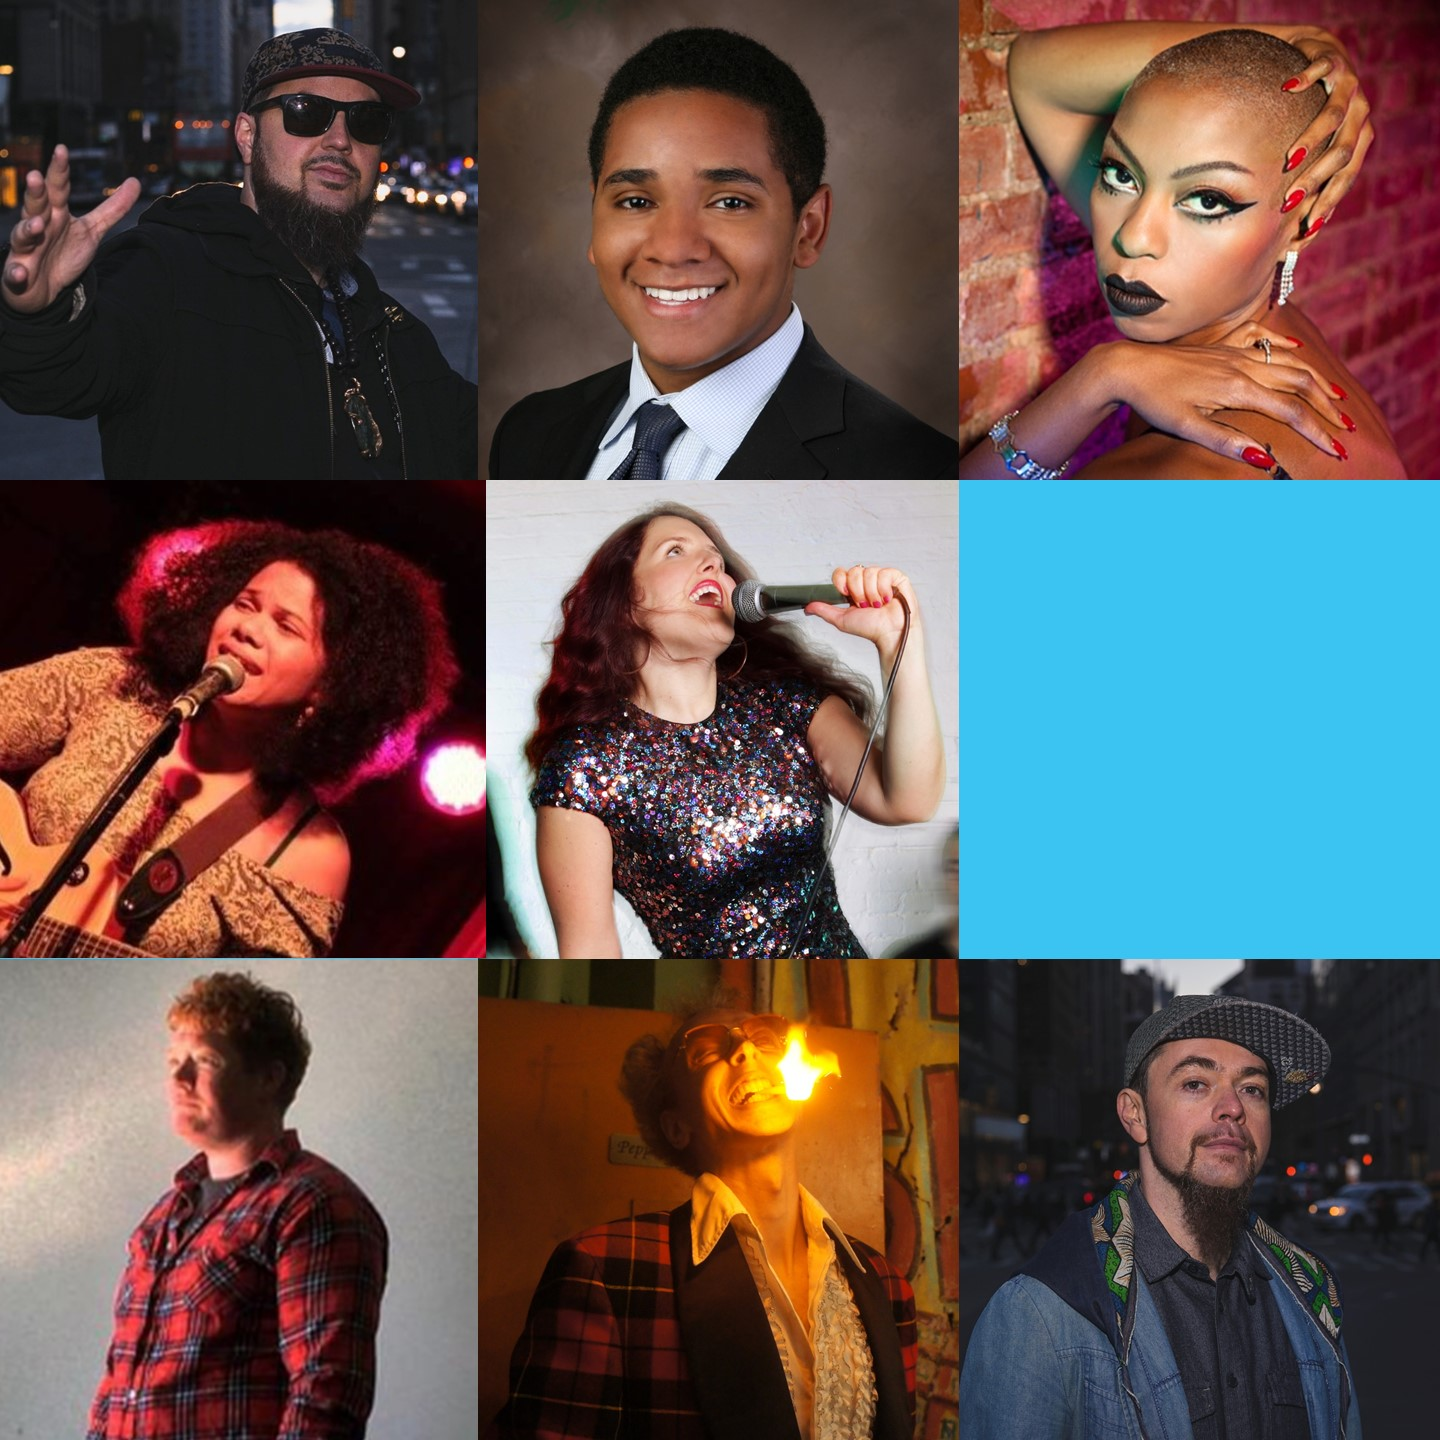 July 13 & 14, 2018   Hosted by Rebecca Vigil  FEATURING: Yako 440 & Baba Israel (Freestyle Beatbox Showcase) Delysia La Chatte (Electrifying Burlesque) Becca Blackwell (Brash & Bold Comedy) Ambrose Martos (Witty Physical Comedy) Grace Galu (Soulful Singer) Marcus Stevenson (Classical Viola)